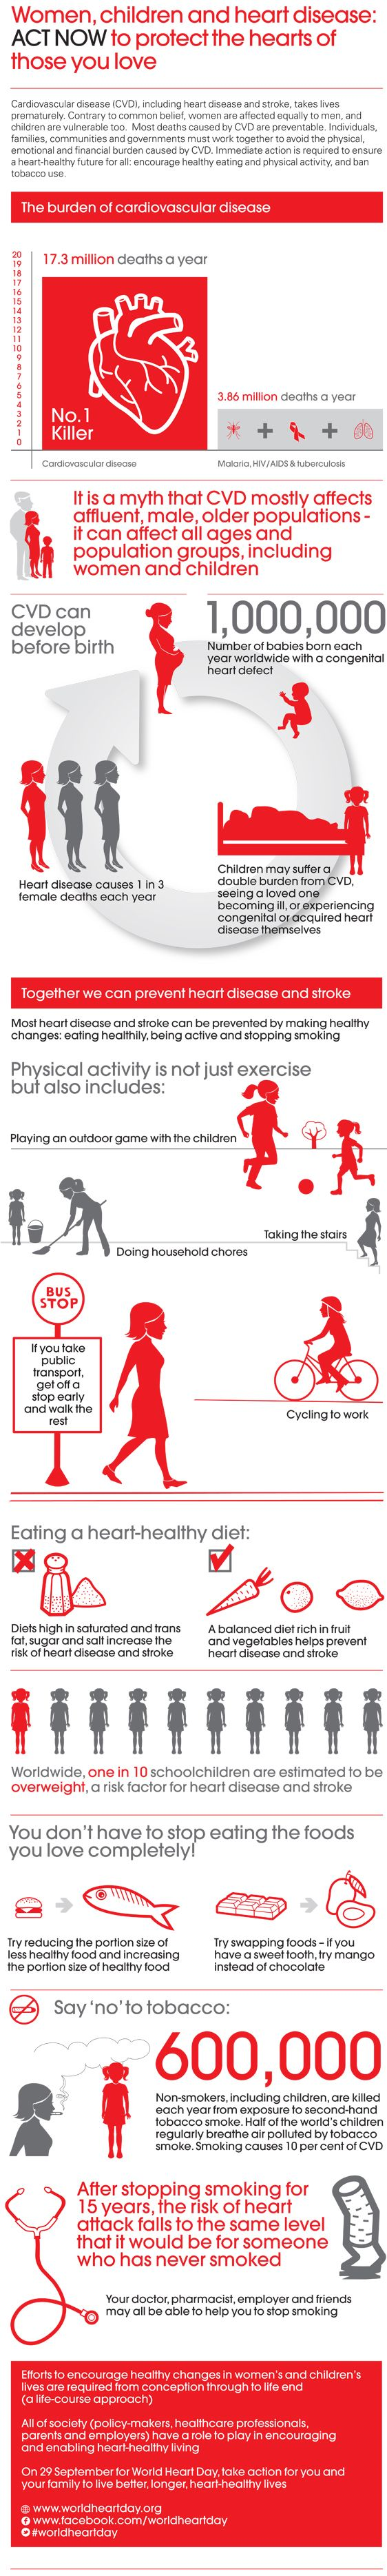 Infographic from the World Heart Federation